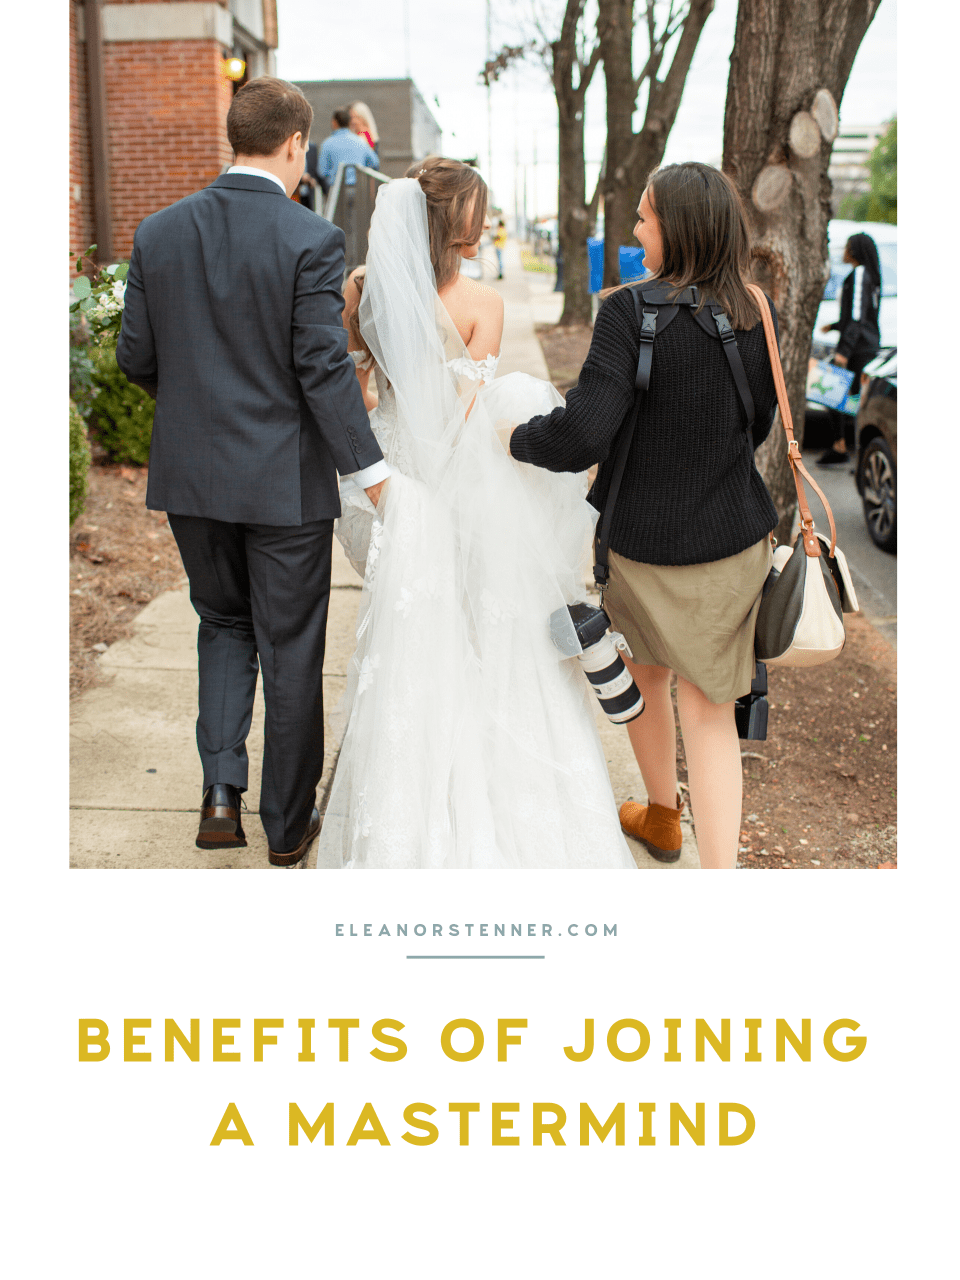 Considering joining a community of likeminded business owners to challenge and encourage you? Here are 3 benefits of joining a mastermind group!